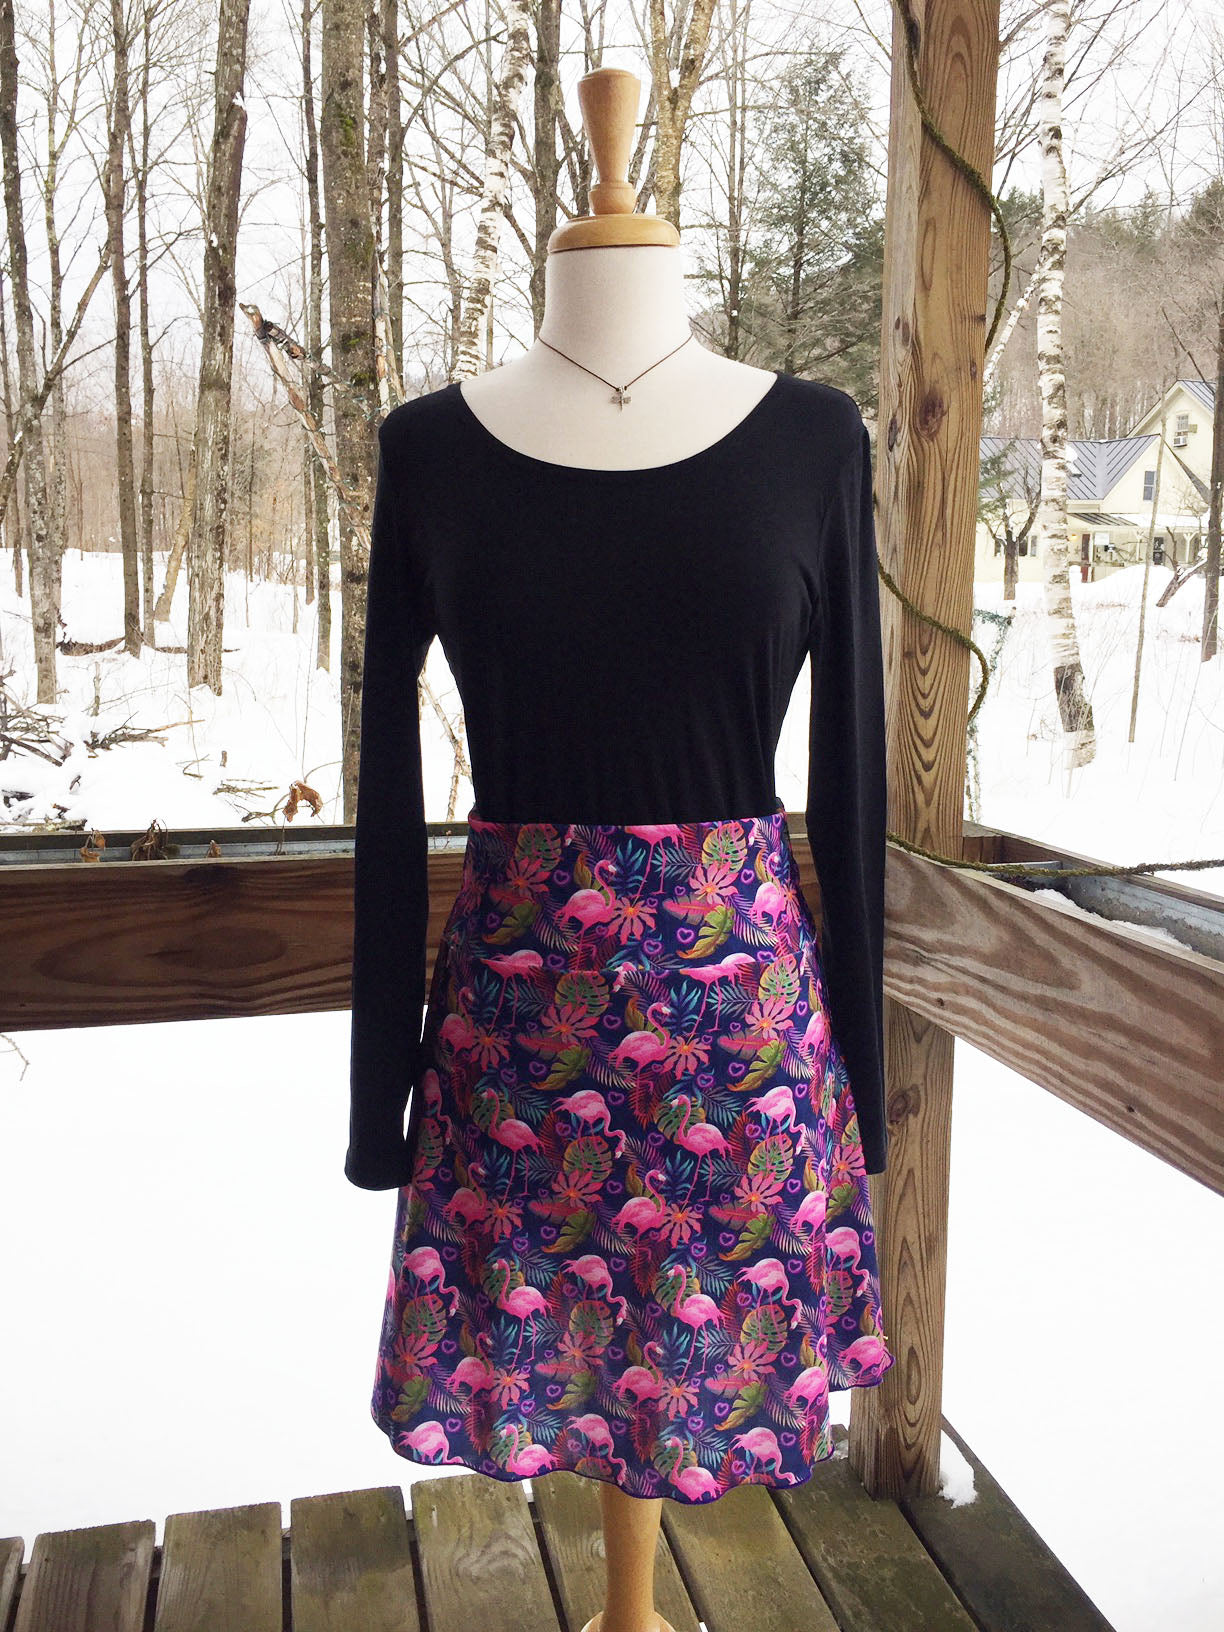 Reign Vermont Adventure Skirt in Flamingo